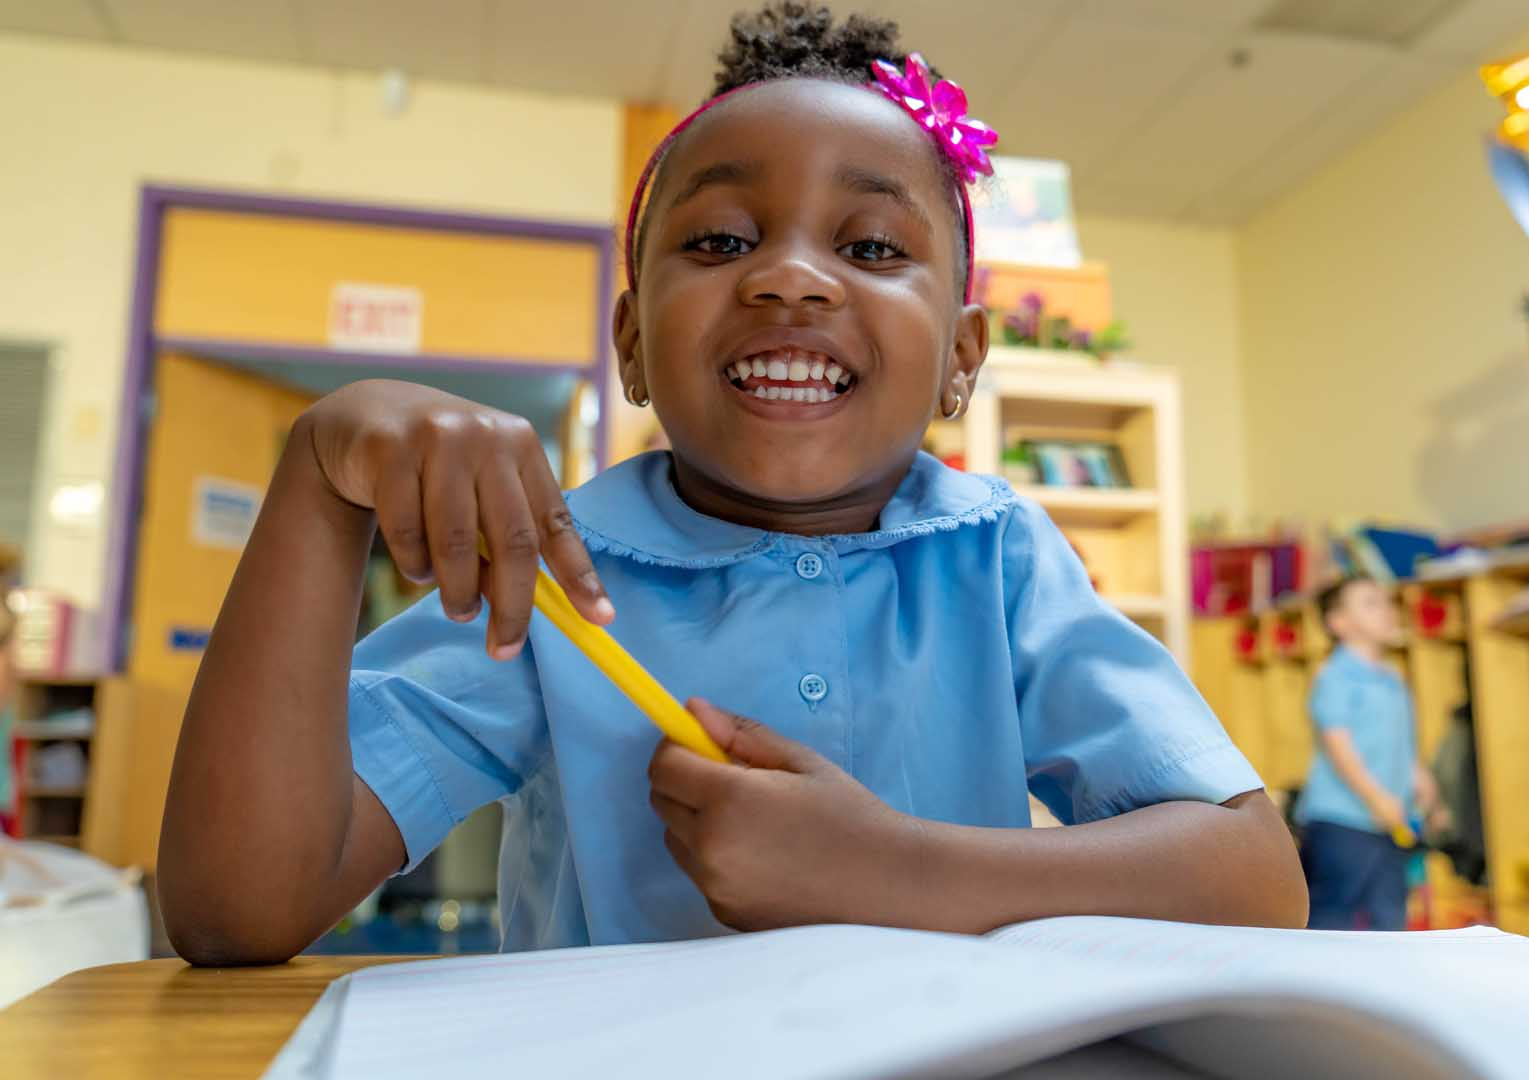 Photo of smiling girl in classroom